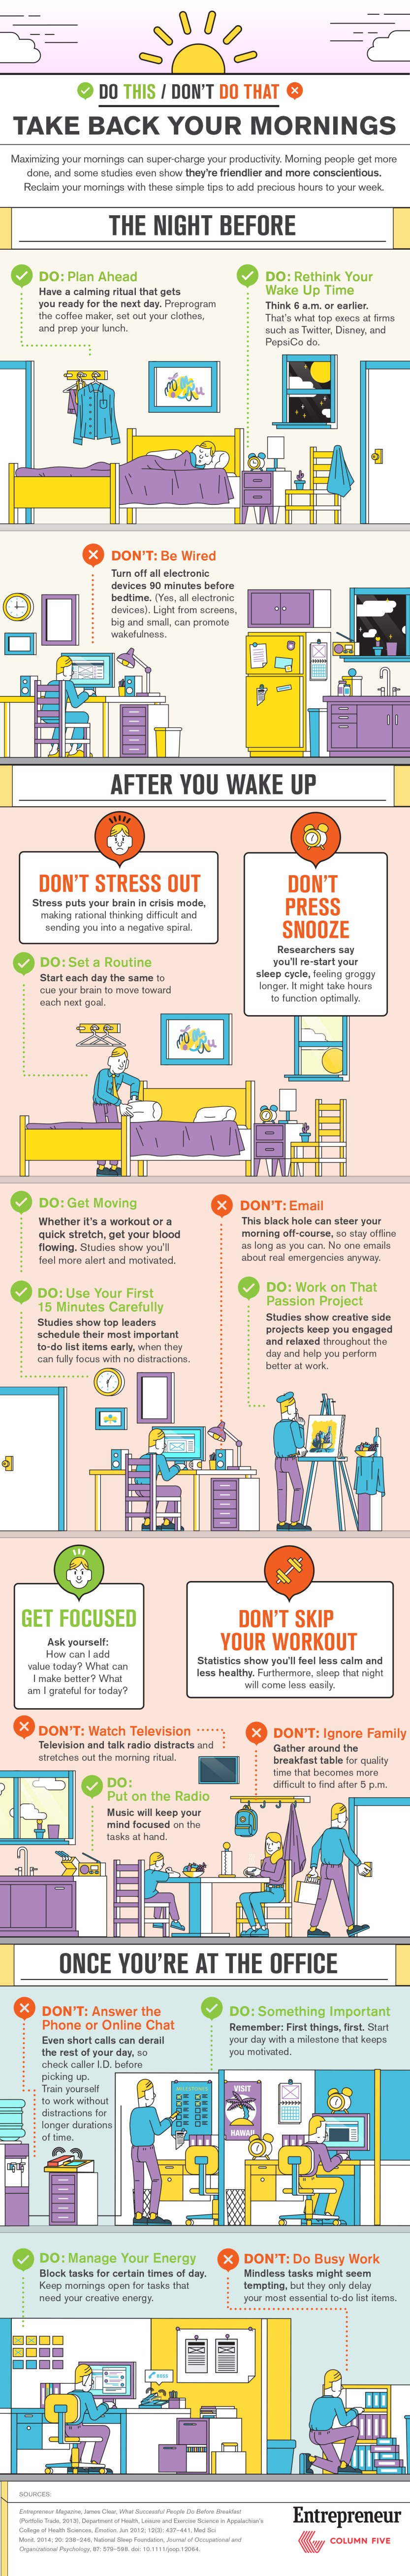 1413563200-take-your-mornings-back-infographic1